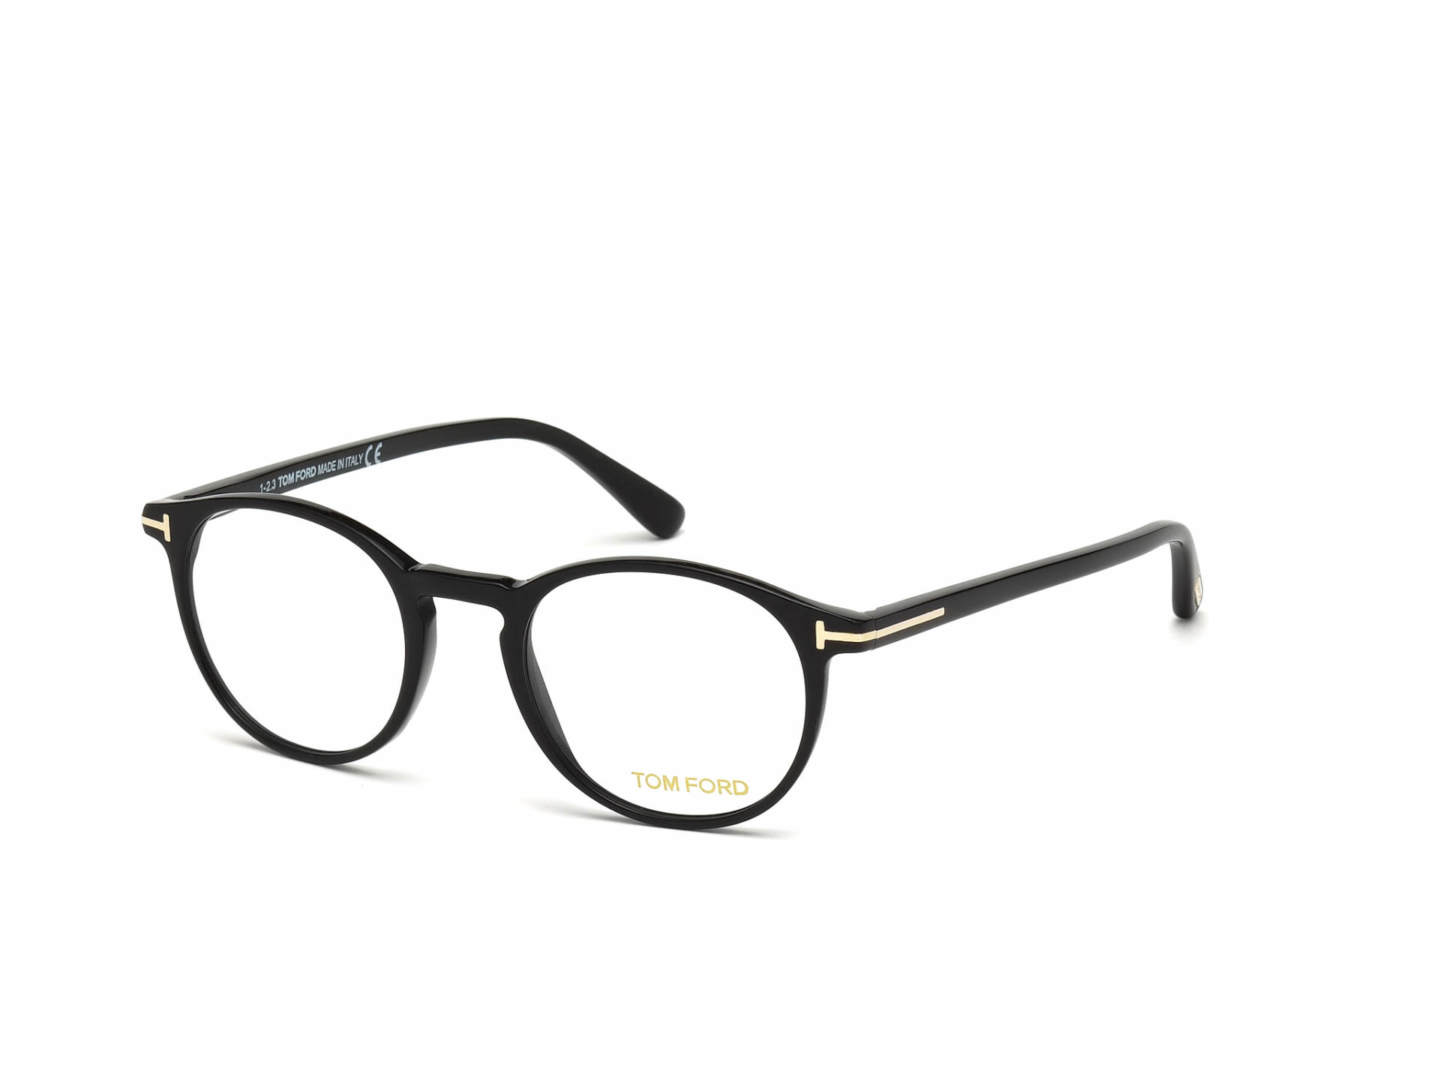 Occhiali da vista per uomo Tom Ford FT5294 001 - calibro 48 oWeFRn4z0